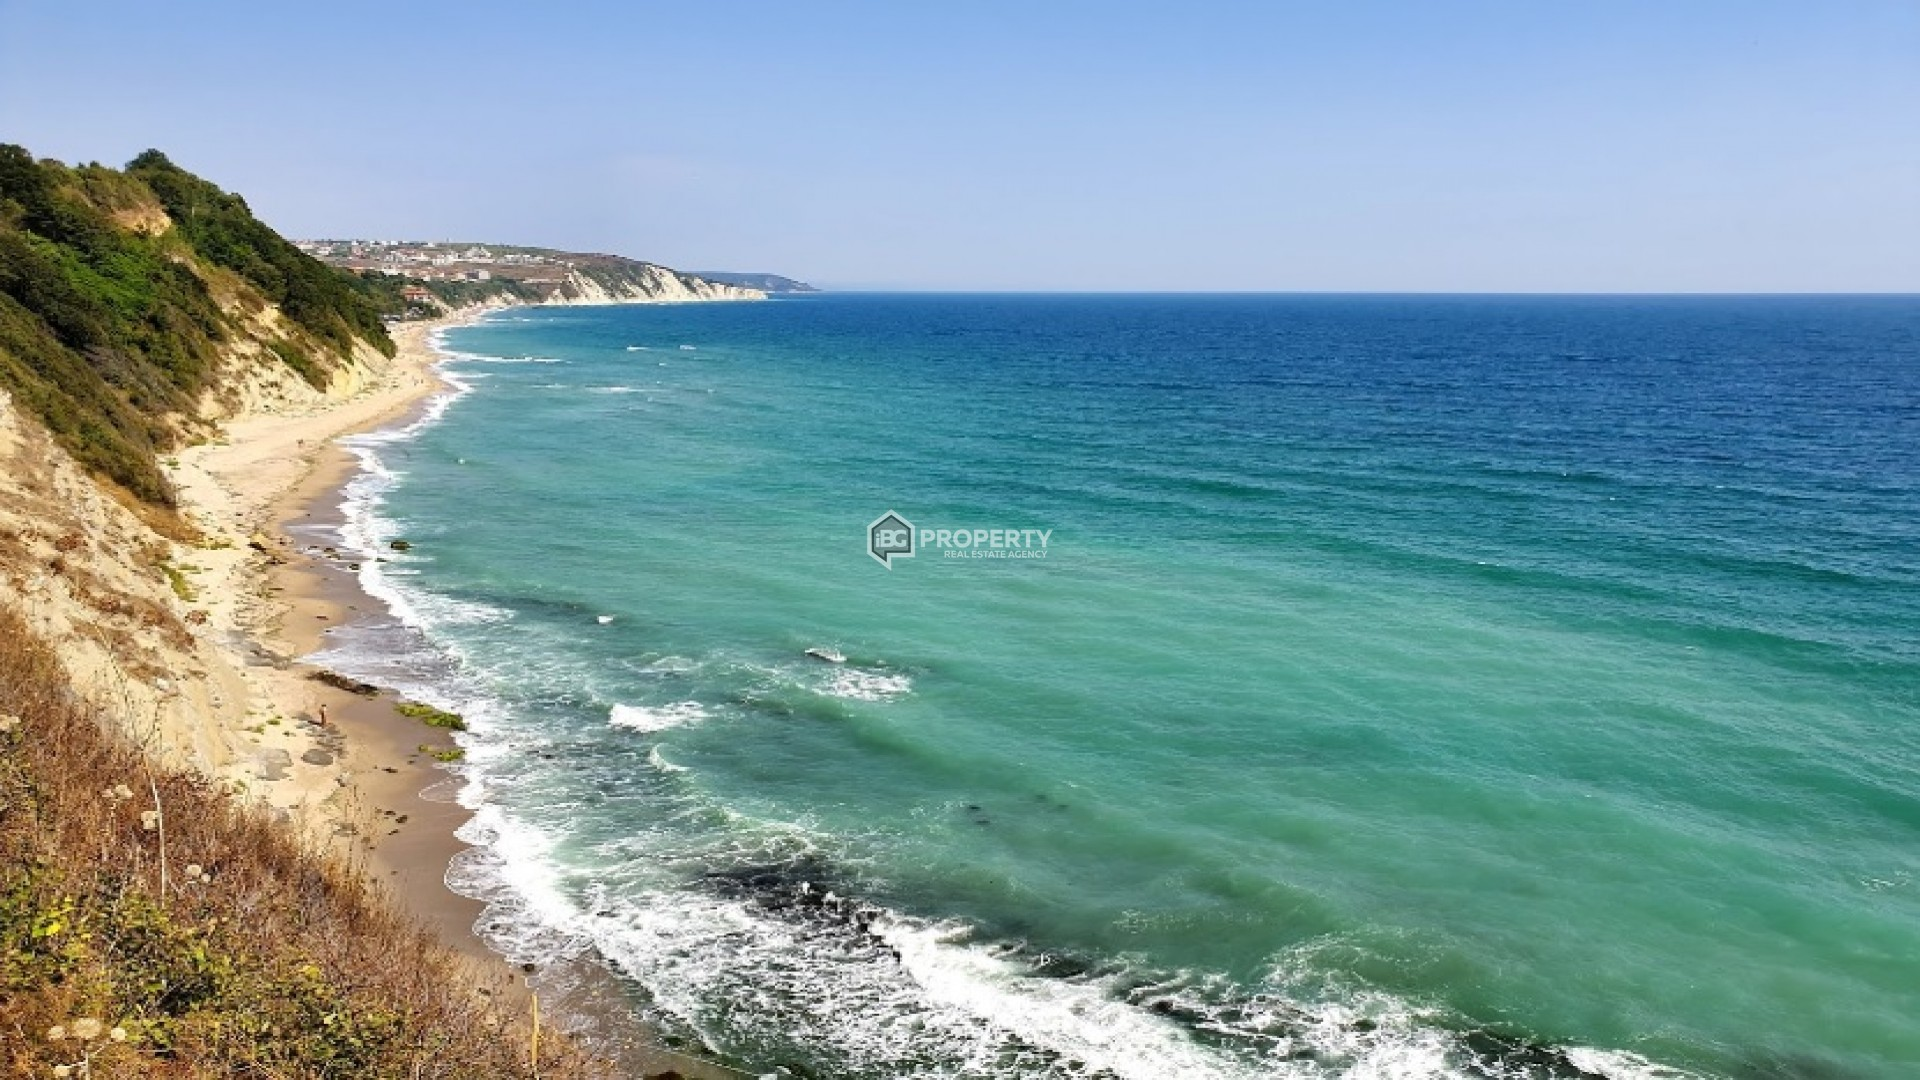 Two bedroom apartment Byala 121 m2